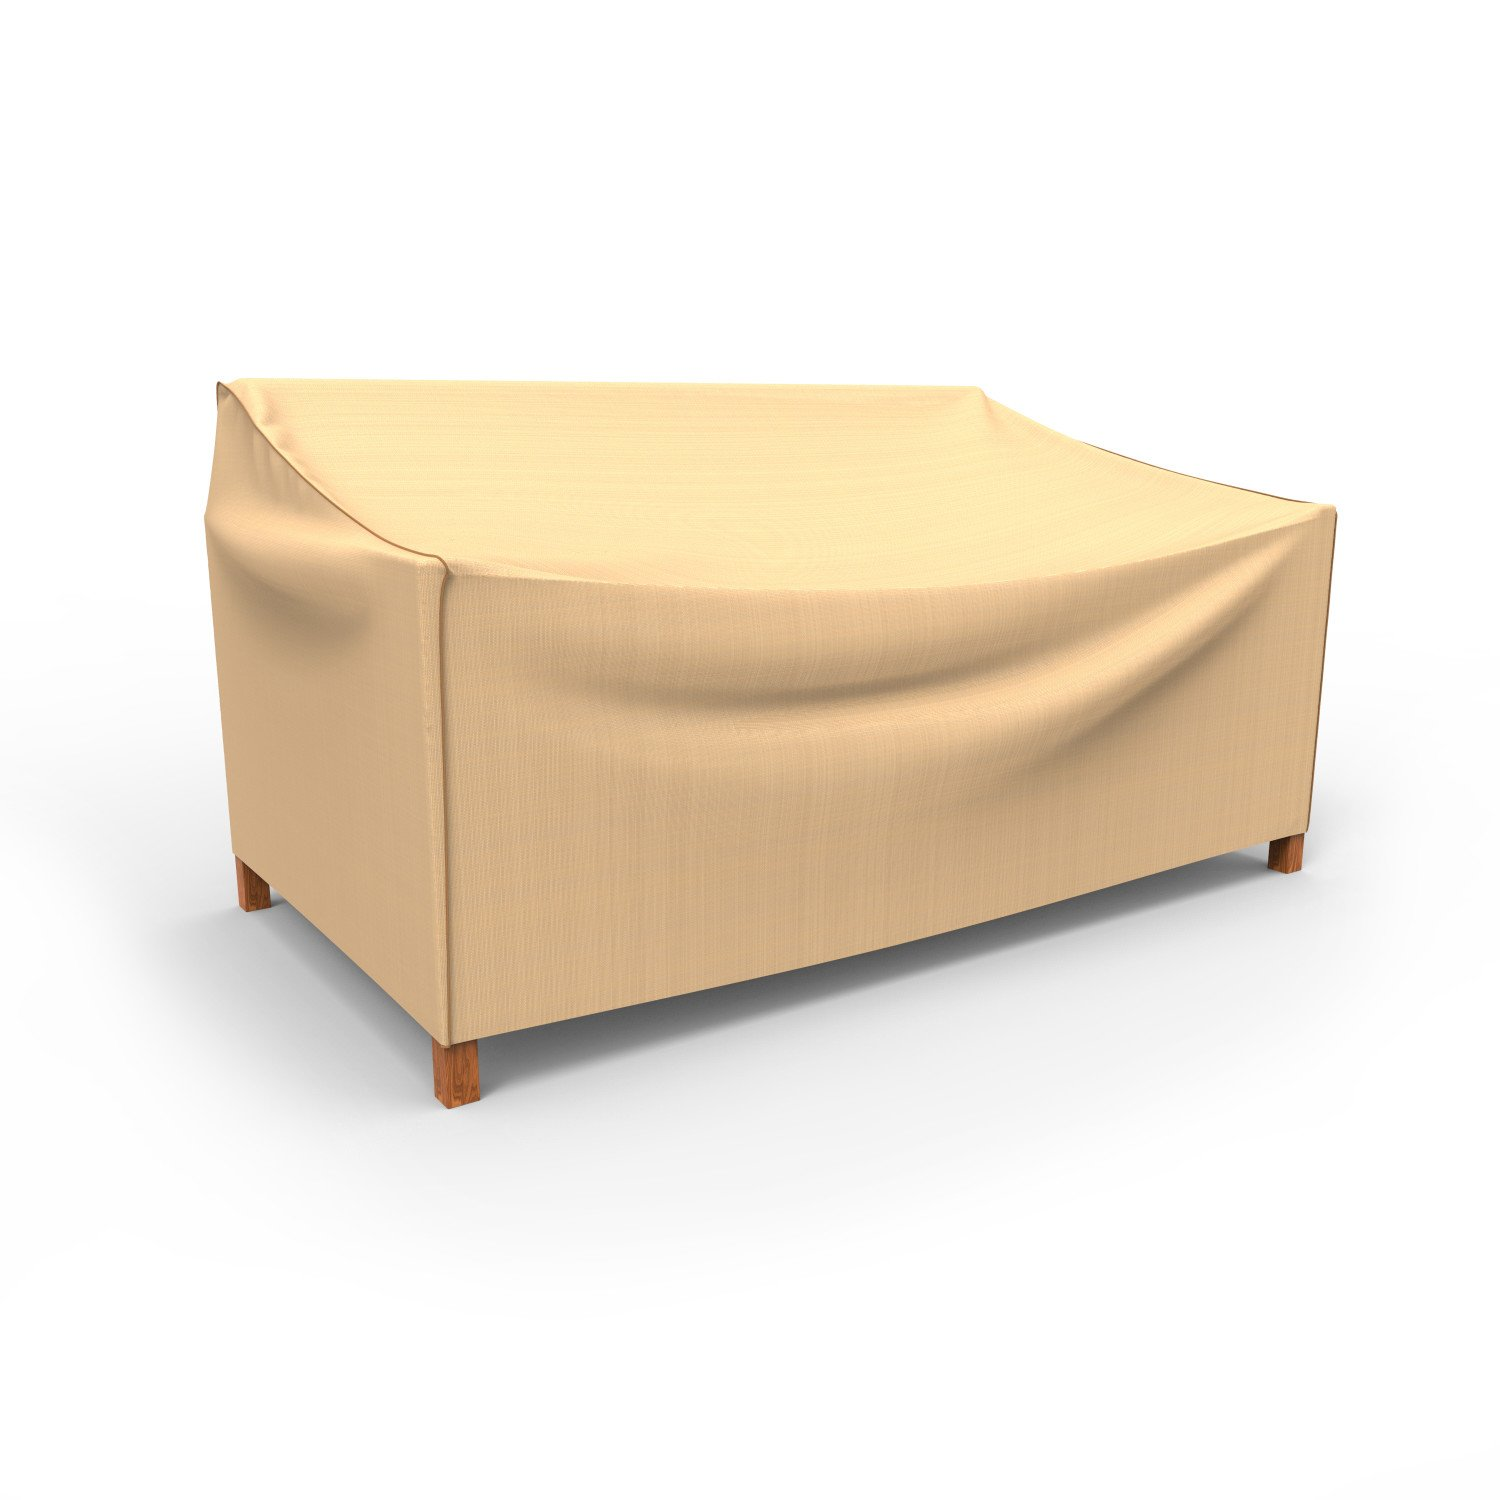 Budge P3W06TNNW1 Outdoor Patio Loveseat Cover-Large Rust-Oleum Neverwet Furniture, 35'' x 58'' W x 38'' deep, Tan